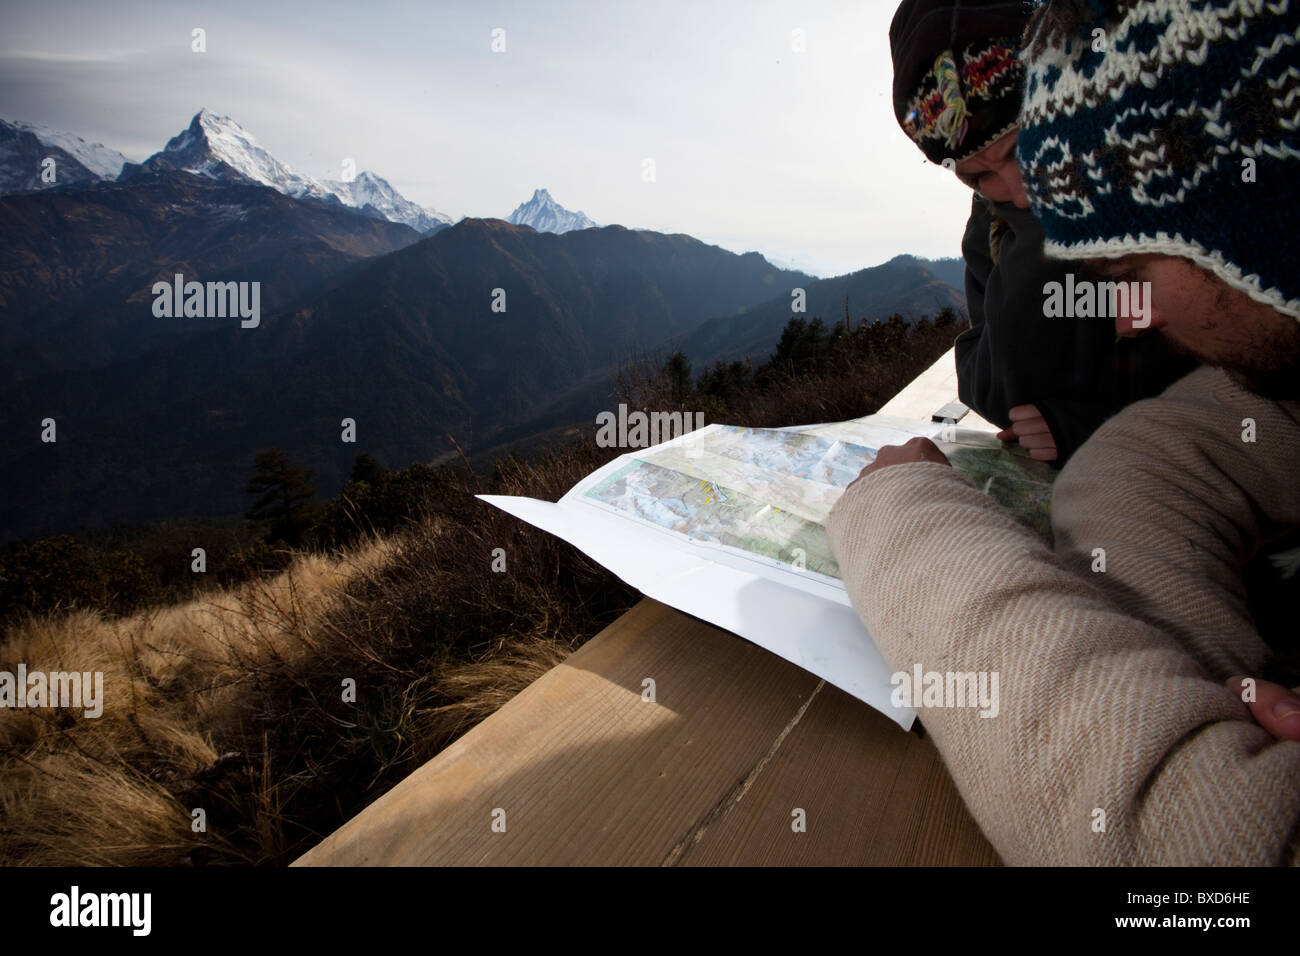 A trekking couple study a map from a viewpoint of Annapurna South in Nepal. - Stock Image